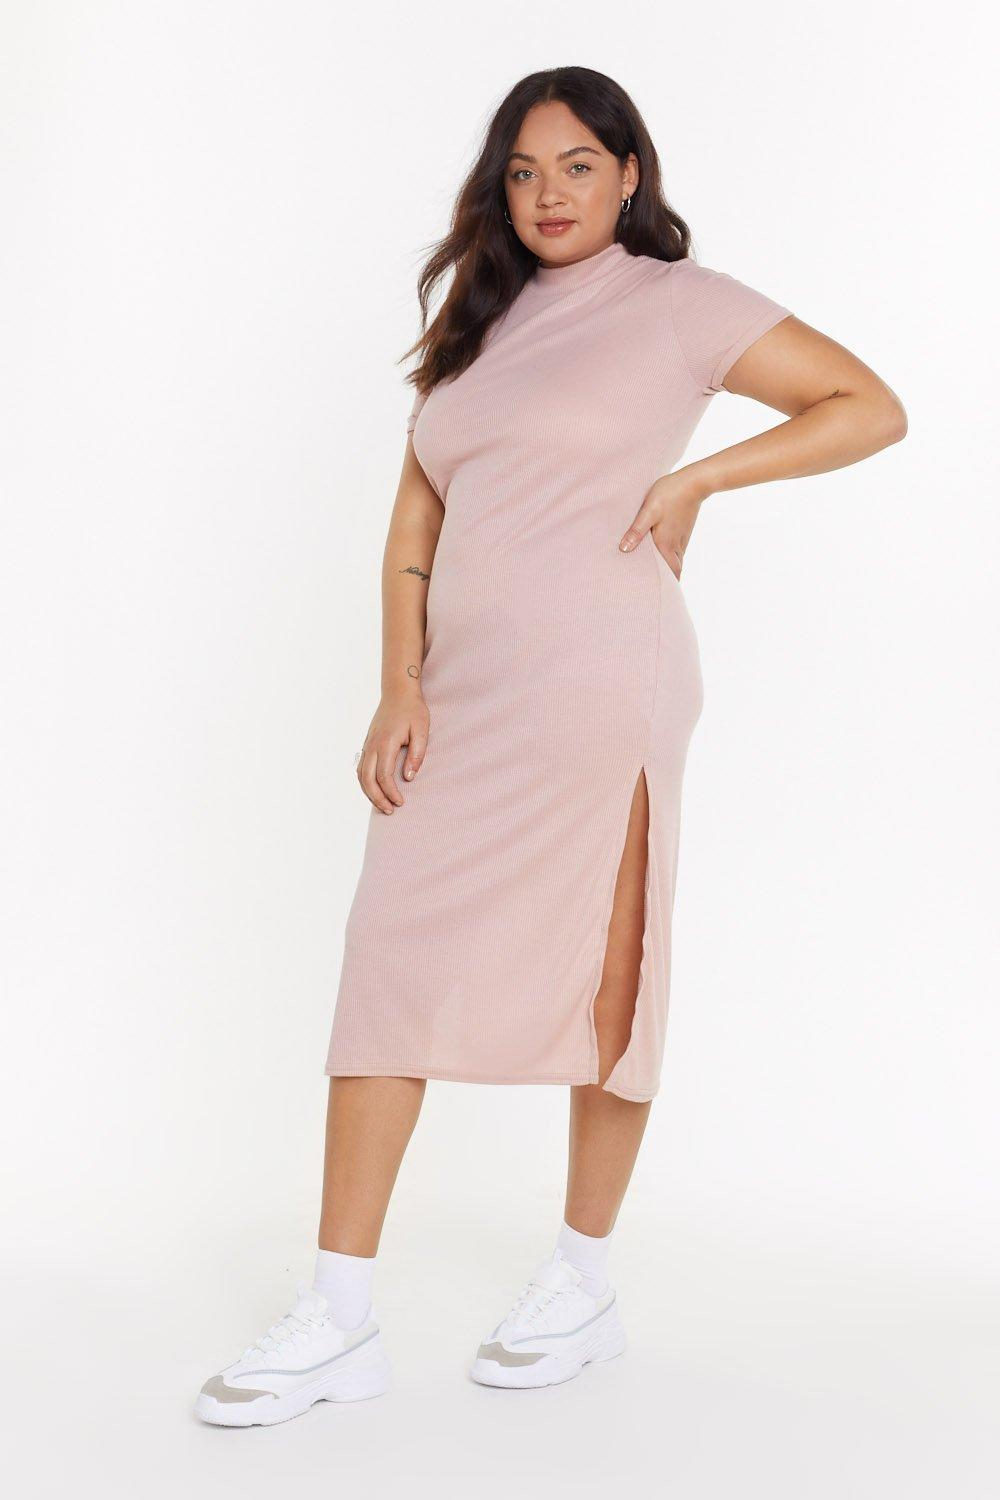 MS Here's The Tee Jersey Maxi Dress